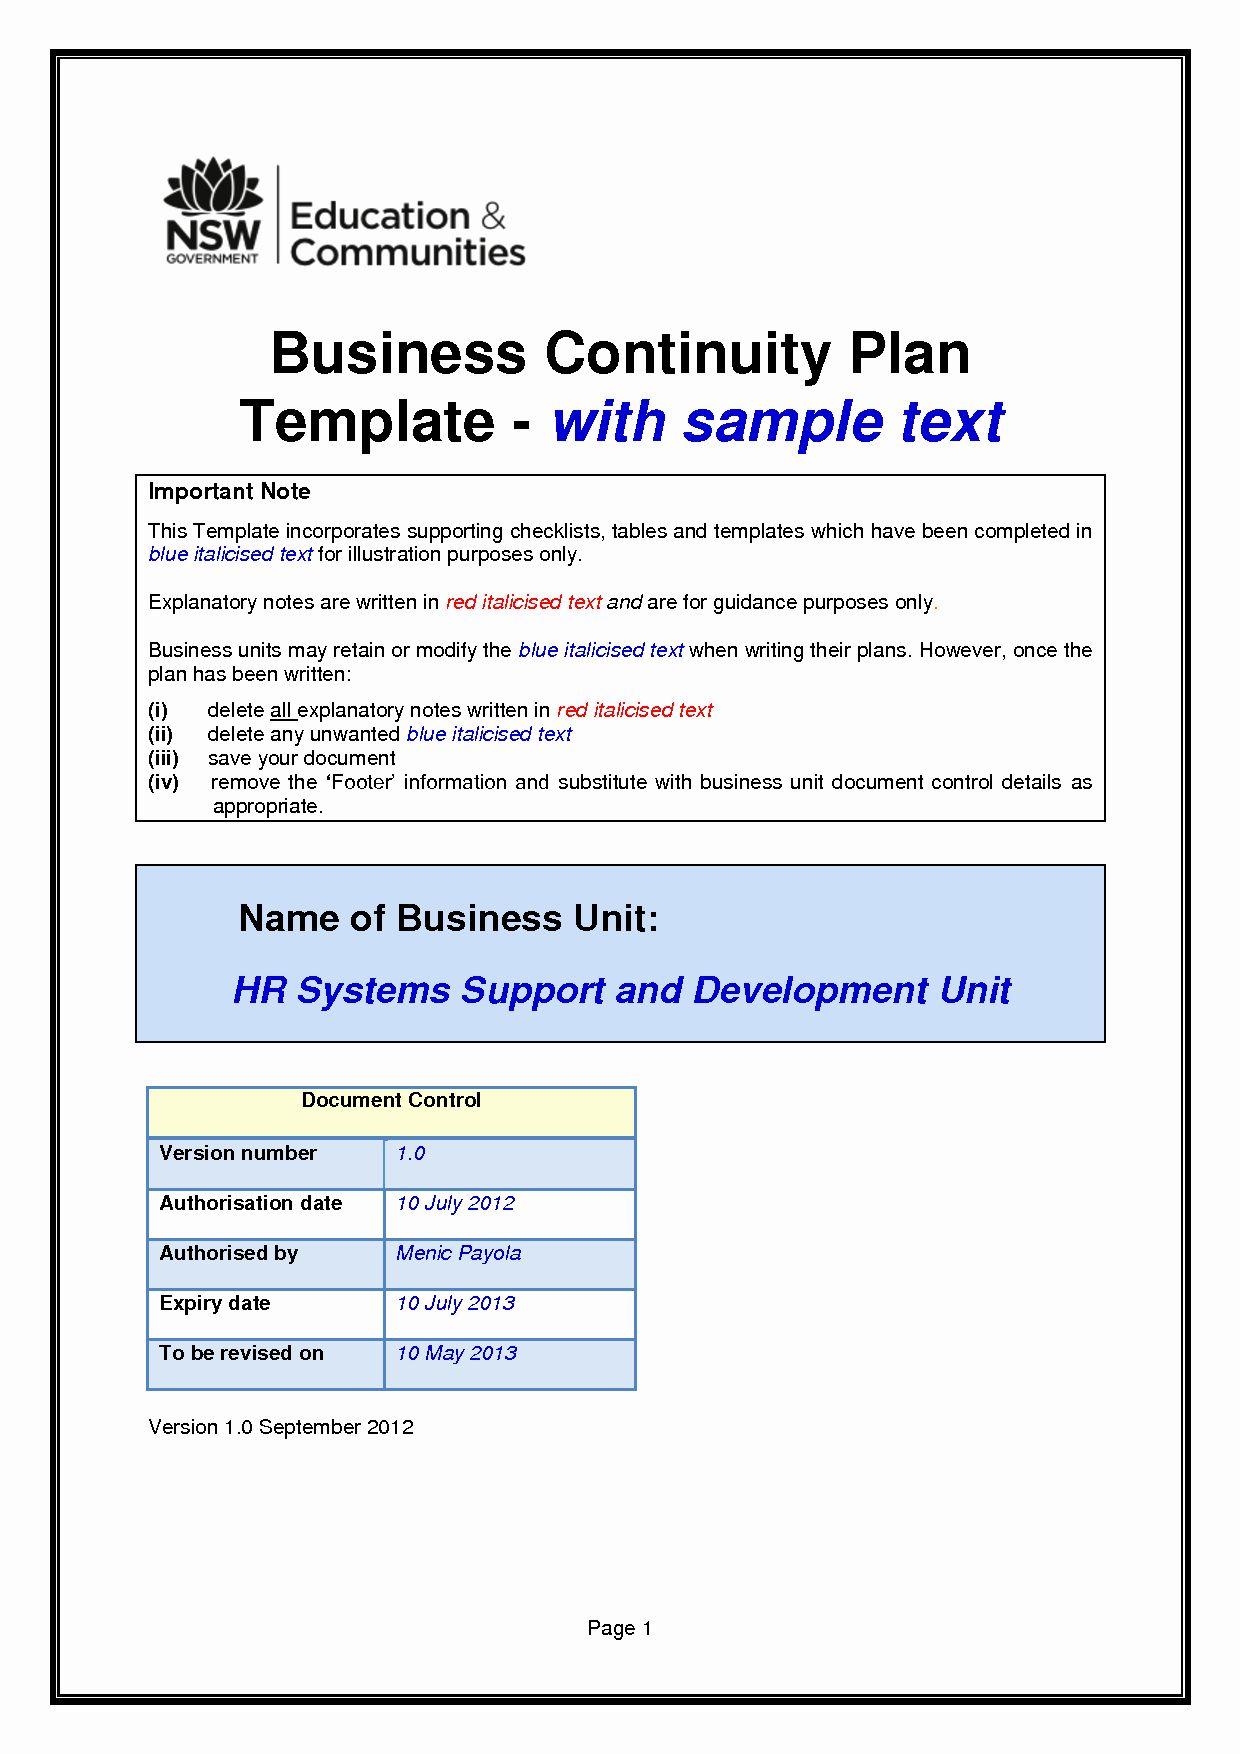 Simple Business Continuity Plan Template Luxury Business Continuity Plan Template In 2020 Business Continuity Planning Business Continuity Business Contingency Plan